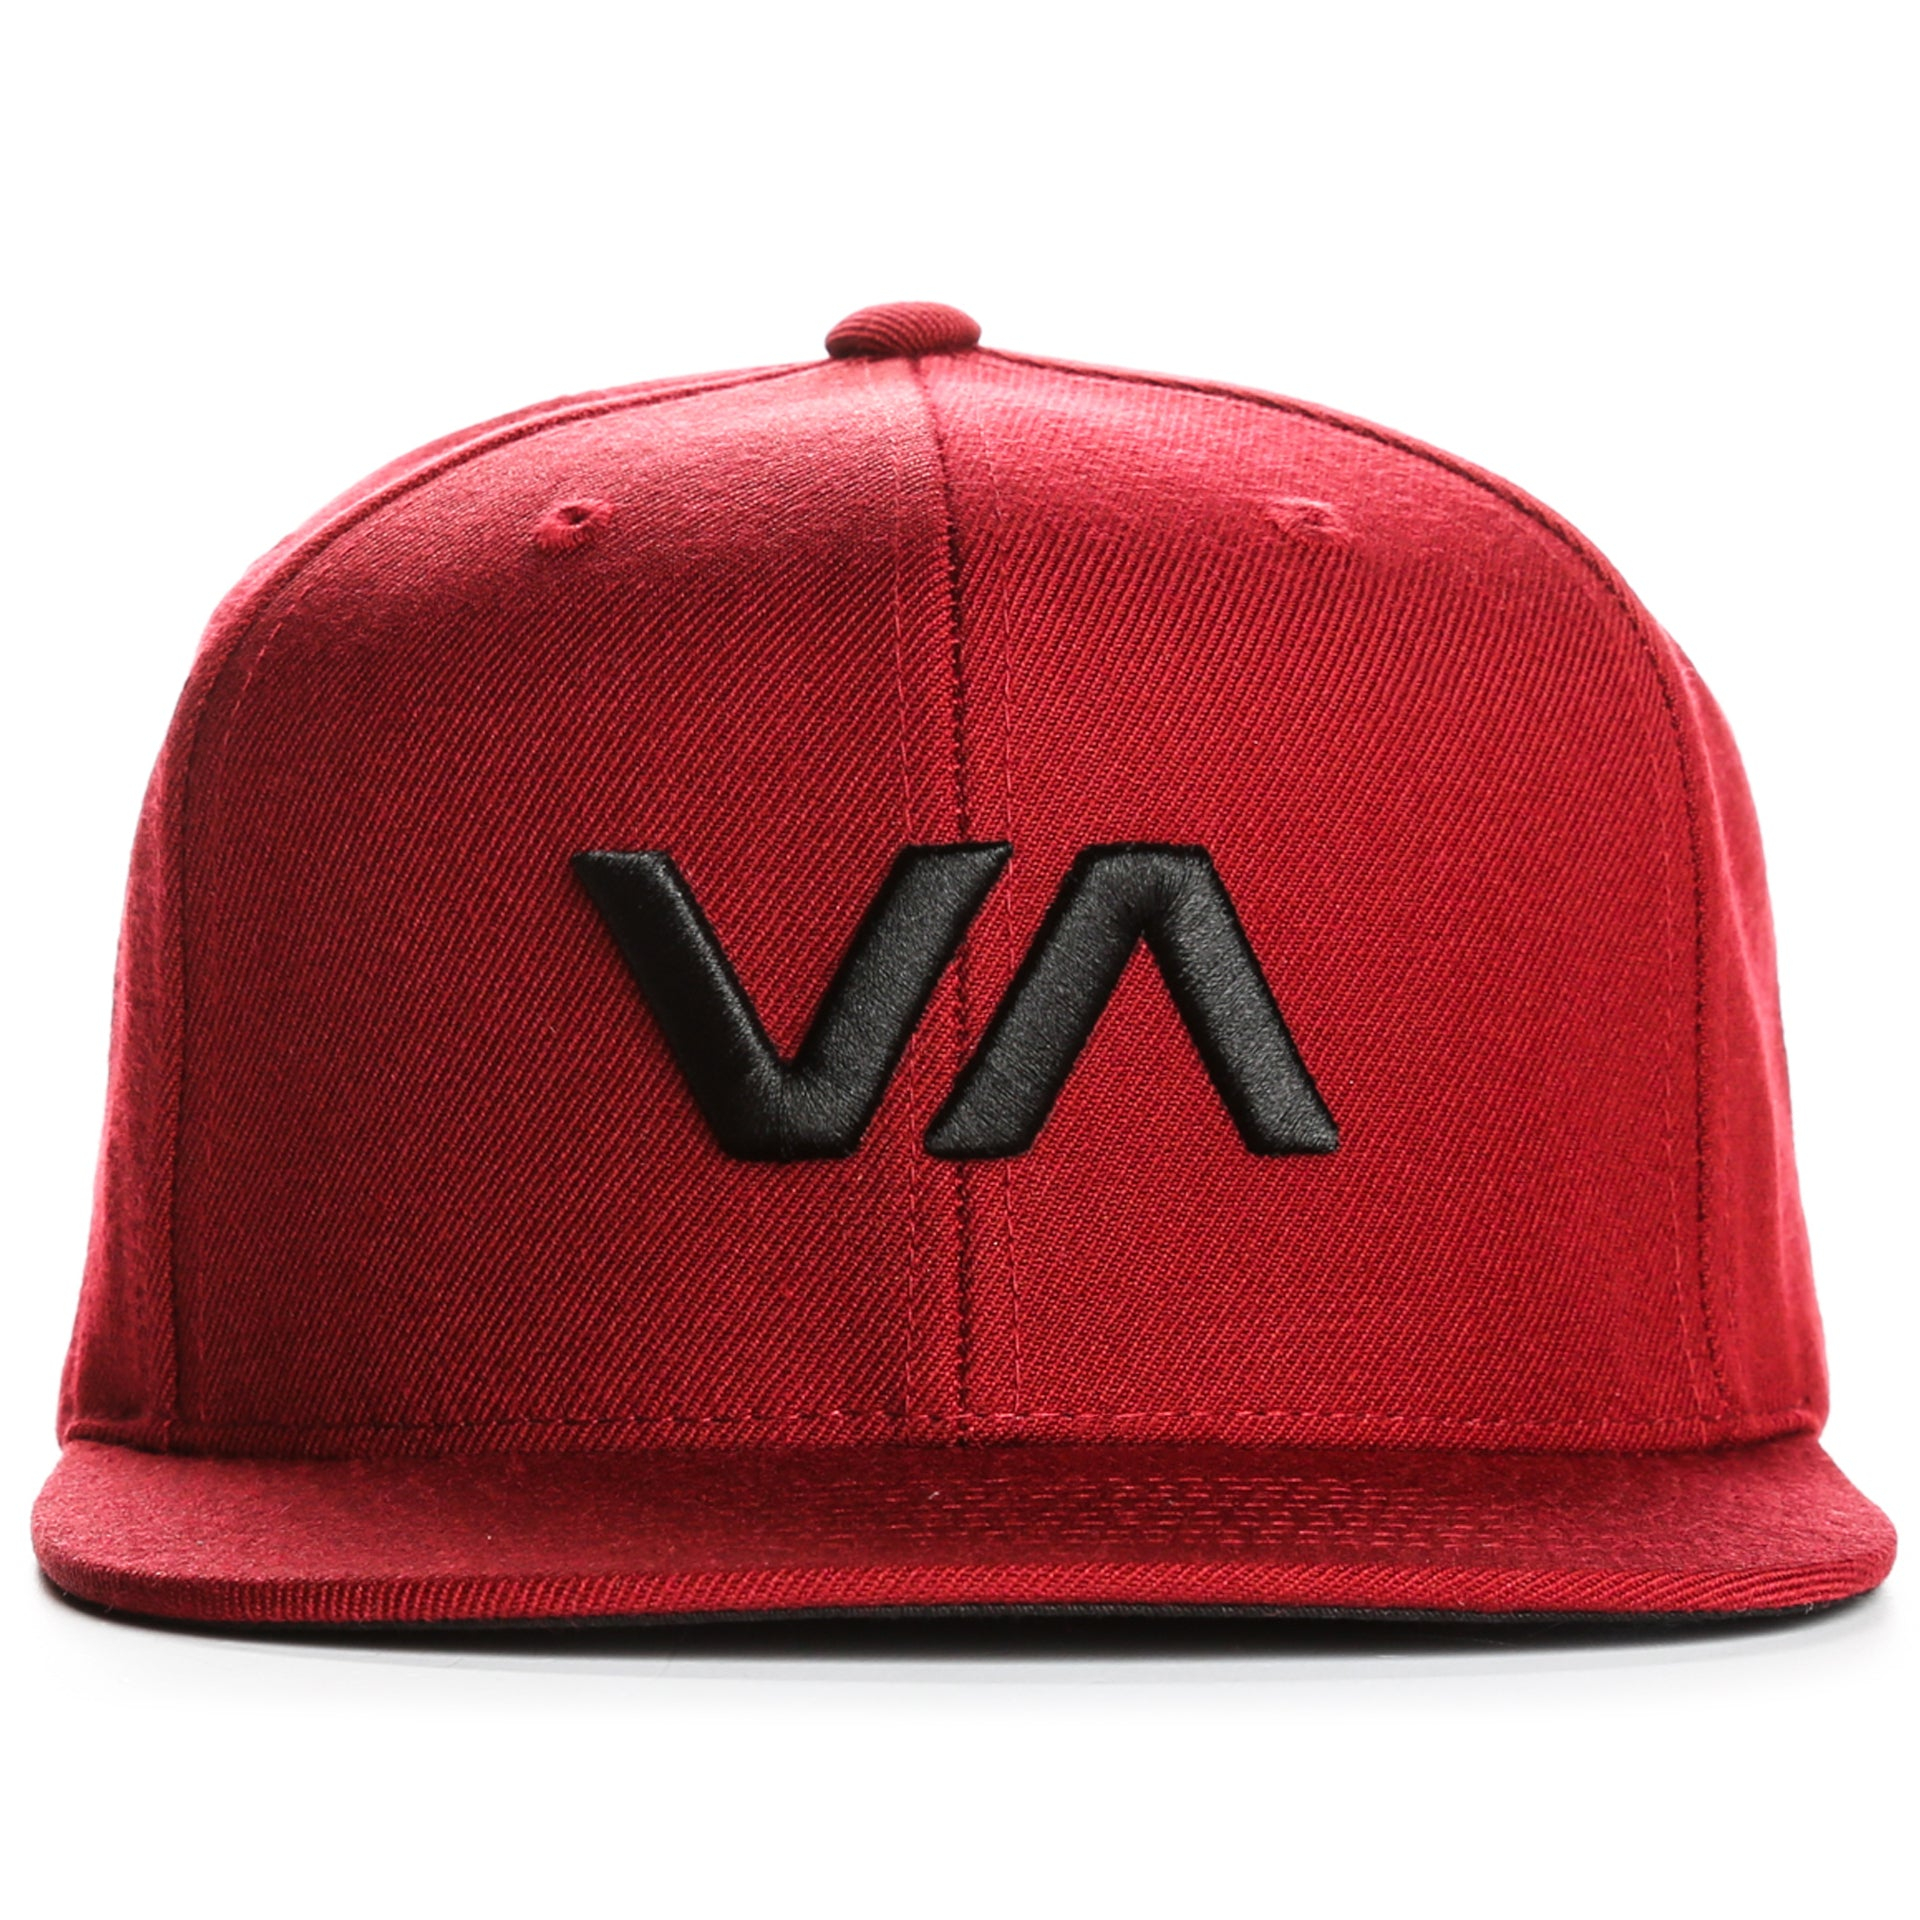 detailed look 00a94 6cc88 ... cheap rvca va snapback ii red a34a5 352e7